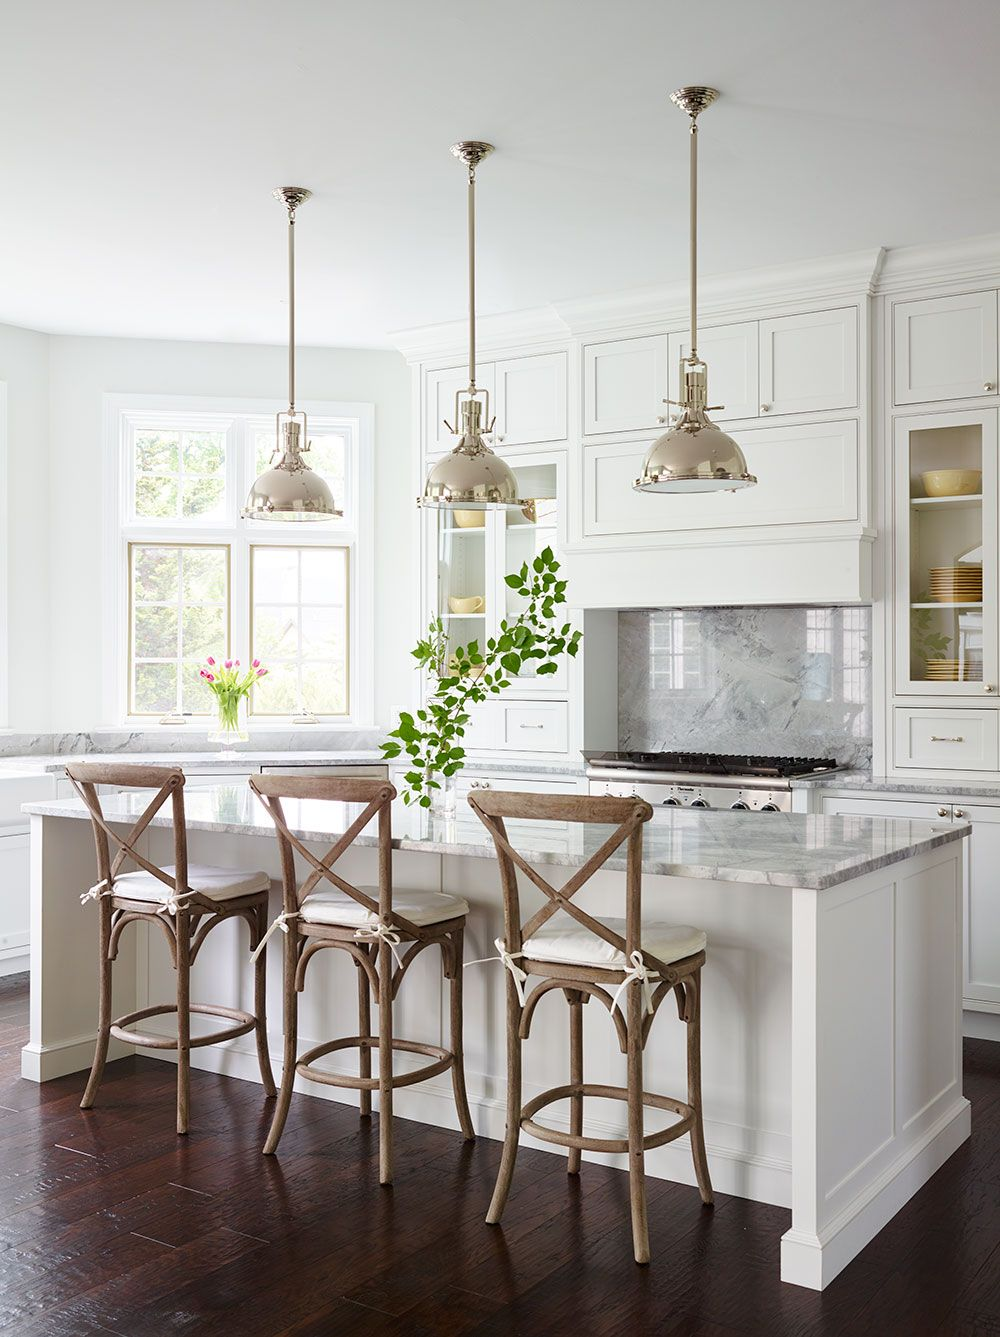 Bright white custom kitchen designed by shophouse floor to ceiling cabinets with large island also best makeover images dining home decor kitchens rh pinterest